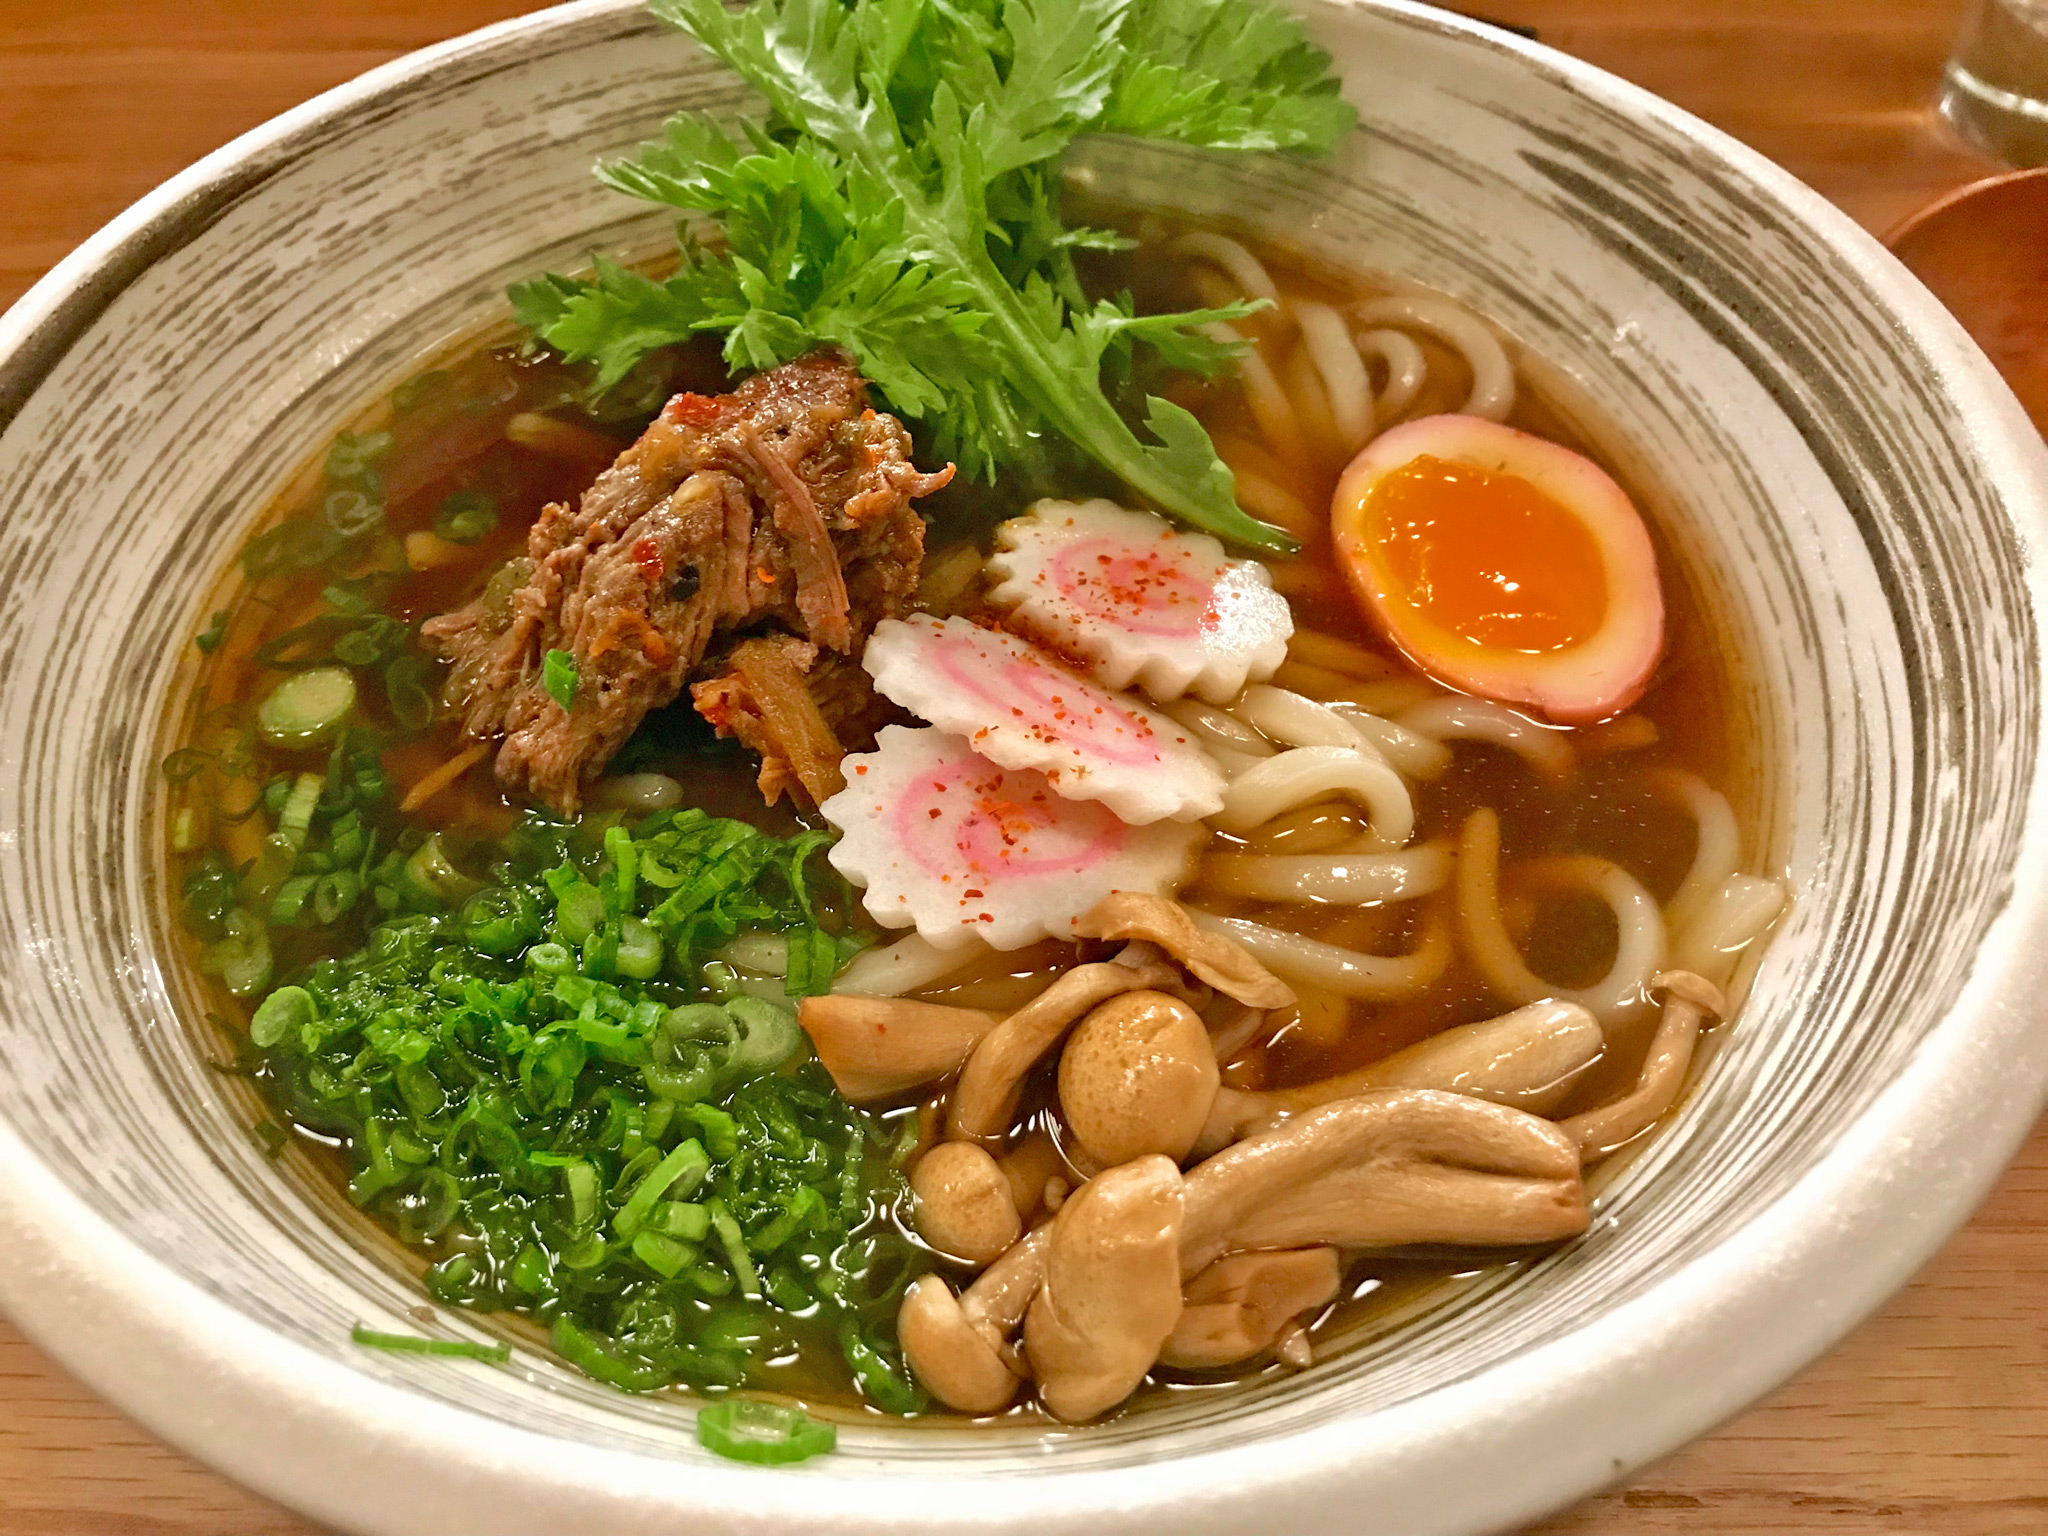 @stpetefoodies's cover photo for 'Ichicoro Ane Opens This Sunday (12/10) on World Ramen Day'